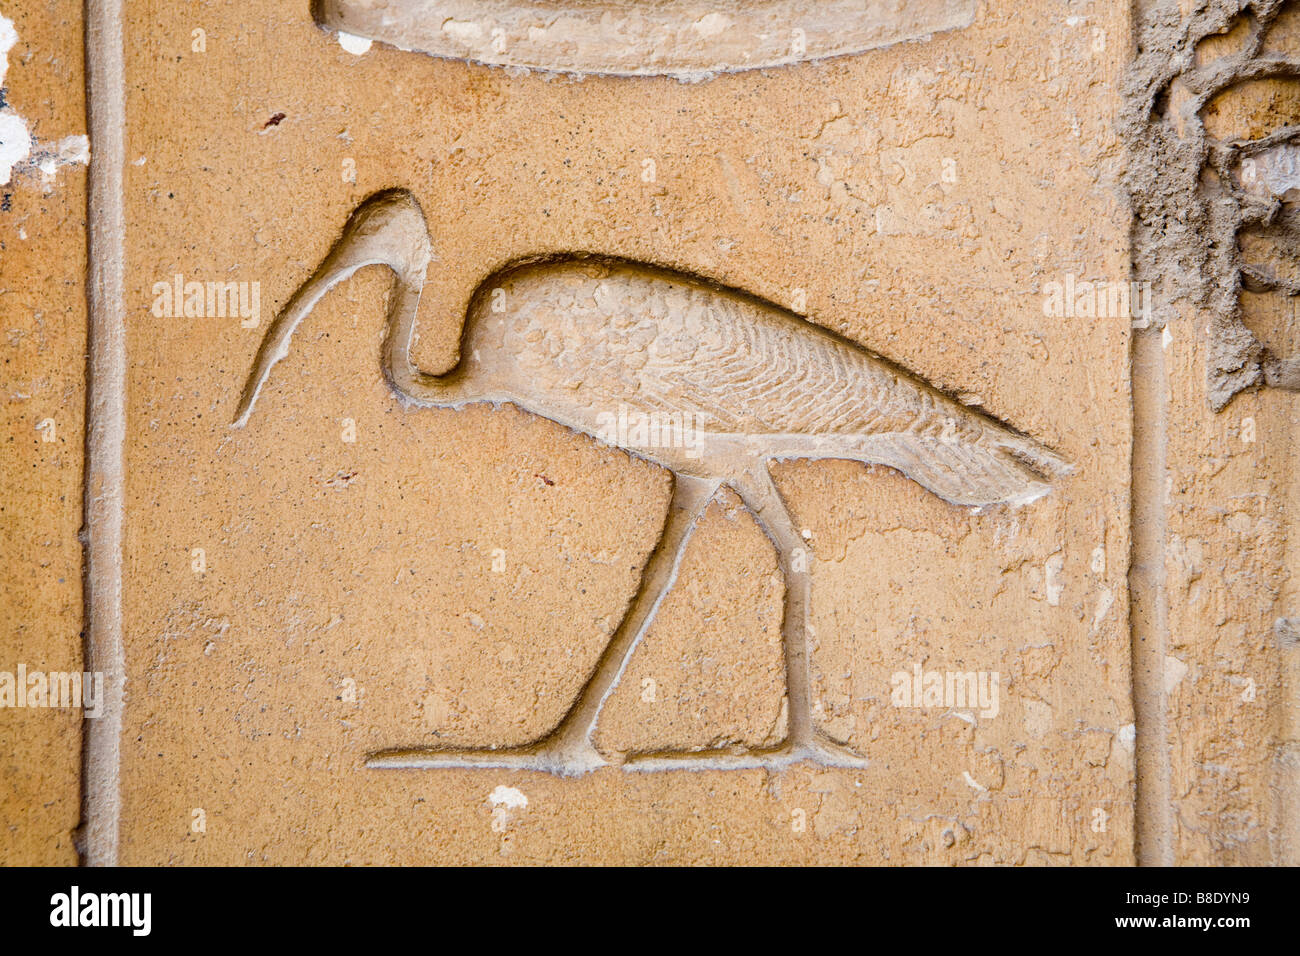 Hieroglyph of ibis bird from mastaba tomb of chief justice and hieroglyph of ibis bird from mastaba tomb of chief justice and vizier kagemni at sakkara egypt buycottarizona Choice Image